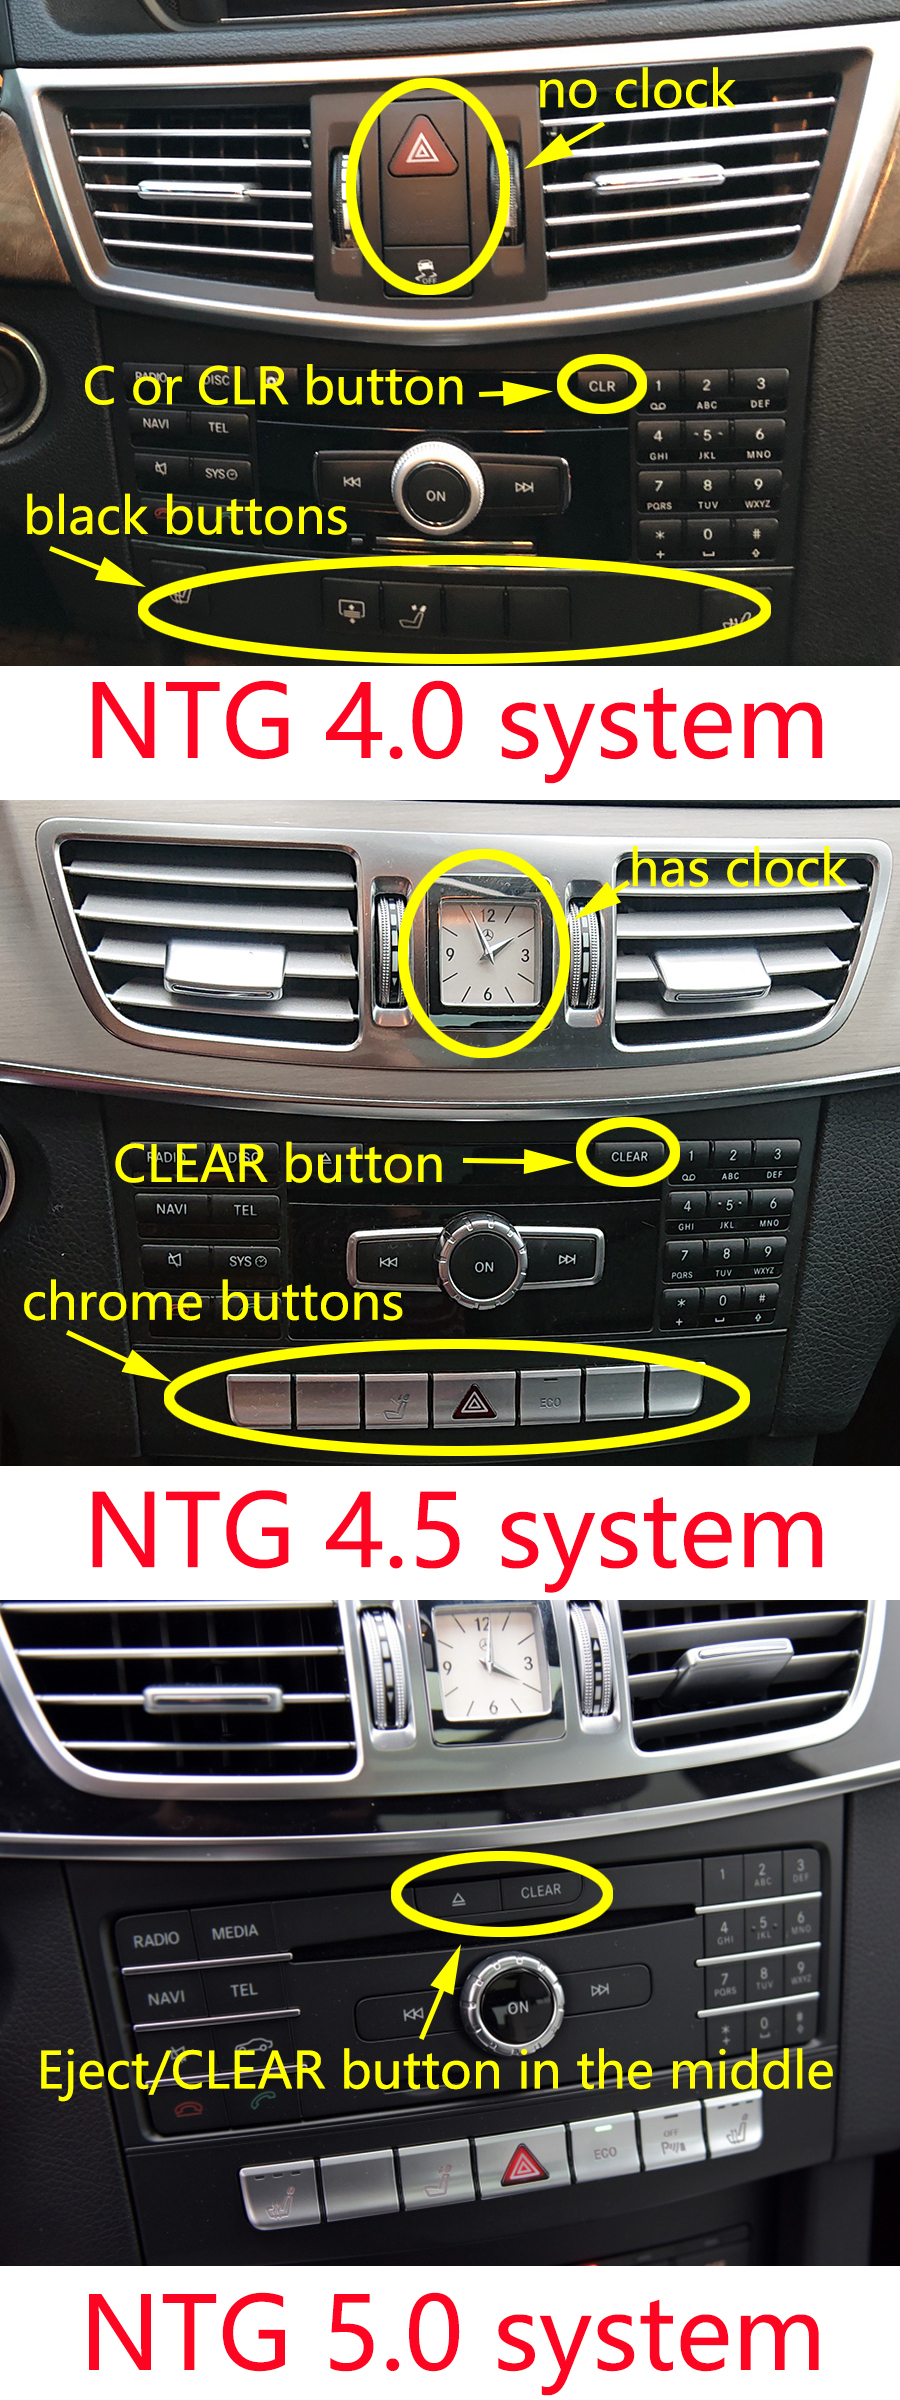 Mercedes-Benz E-Class 2009-2016 (W212) radio upgrade